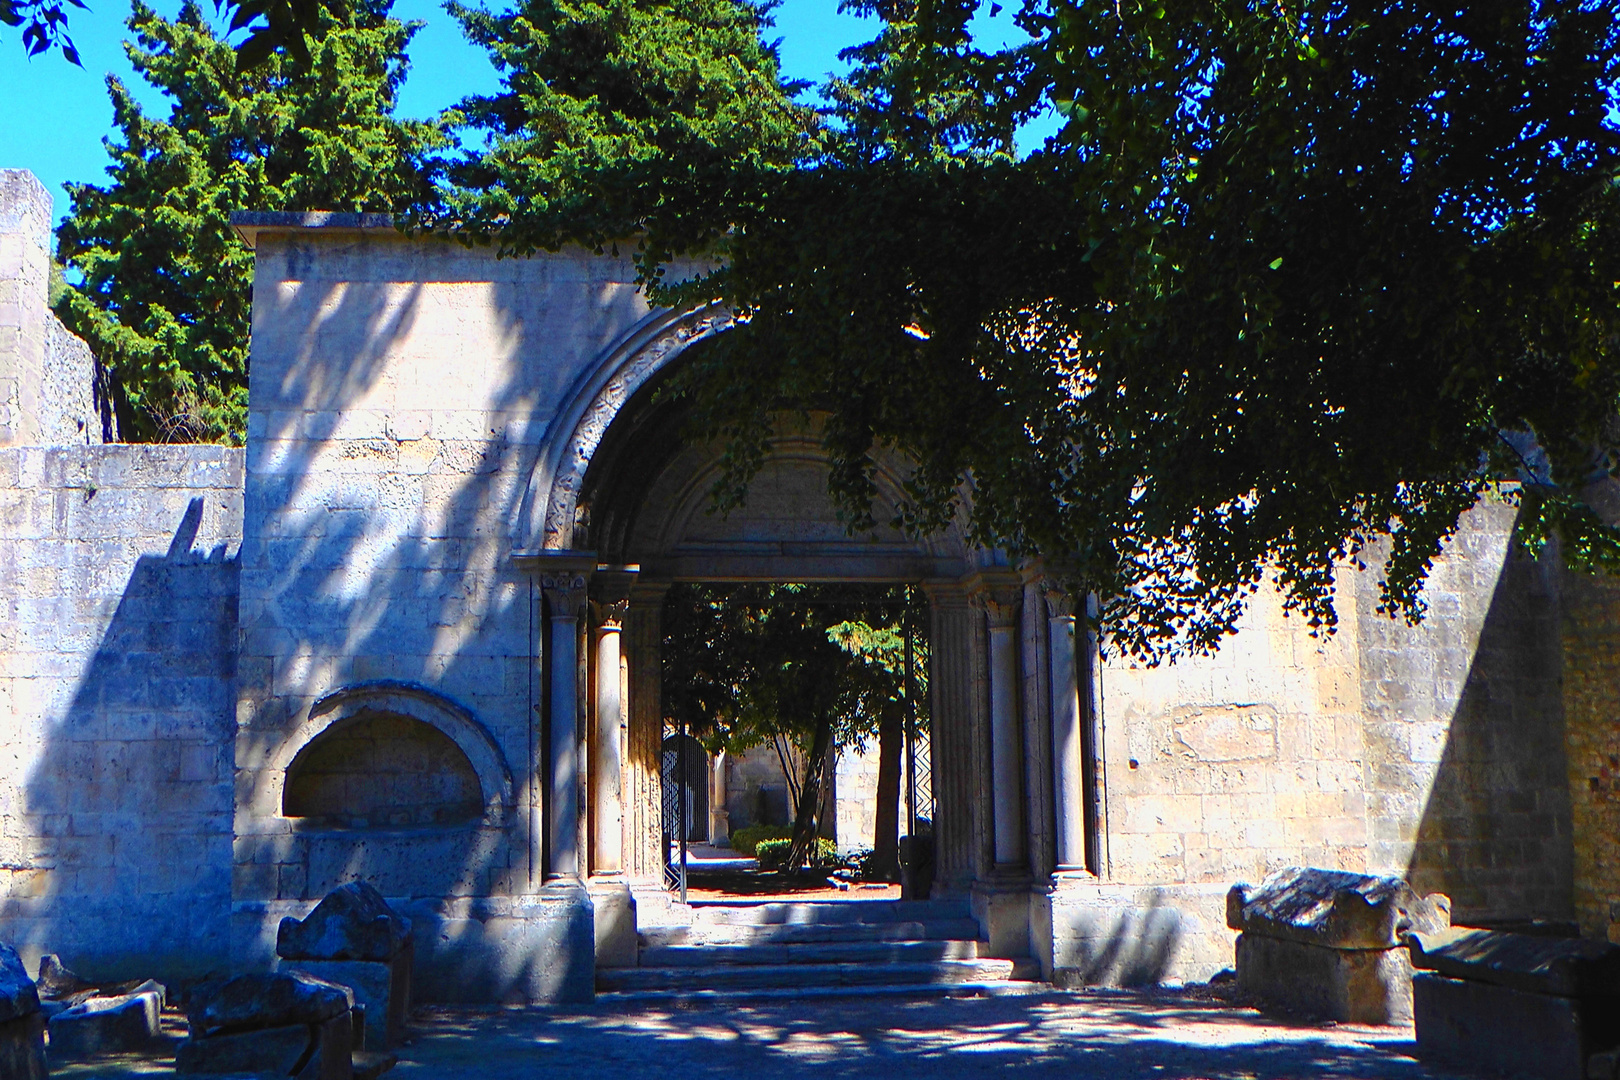 The Entrance to Les Alyscamps, Arles